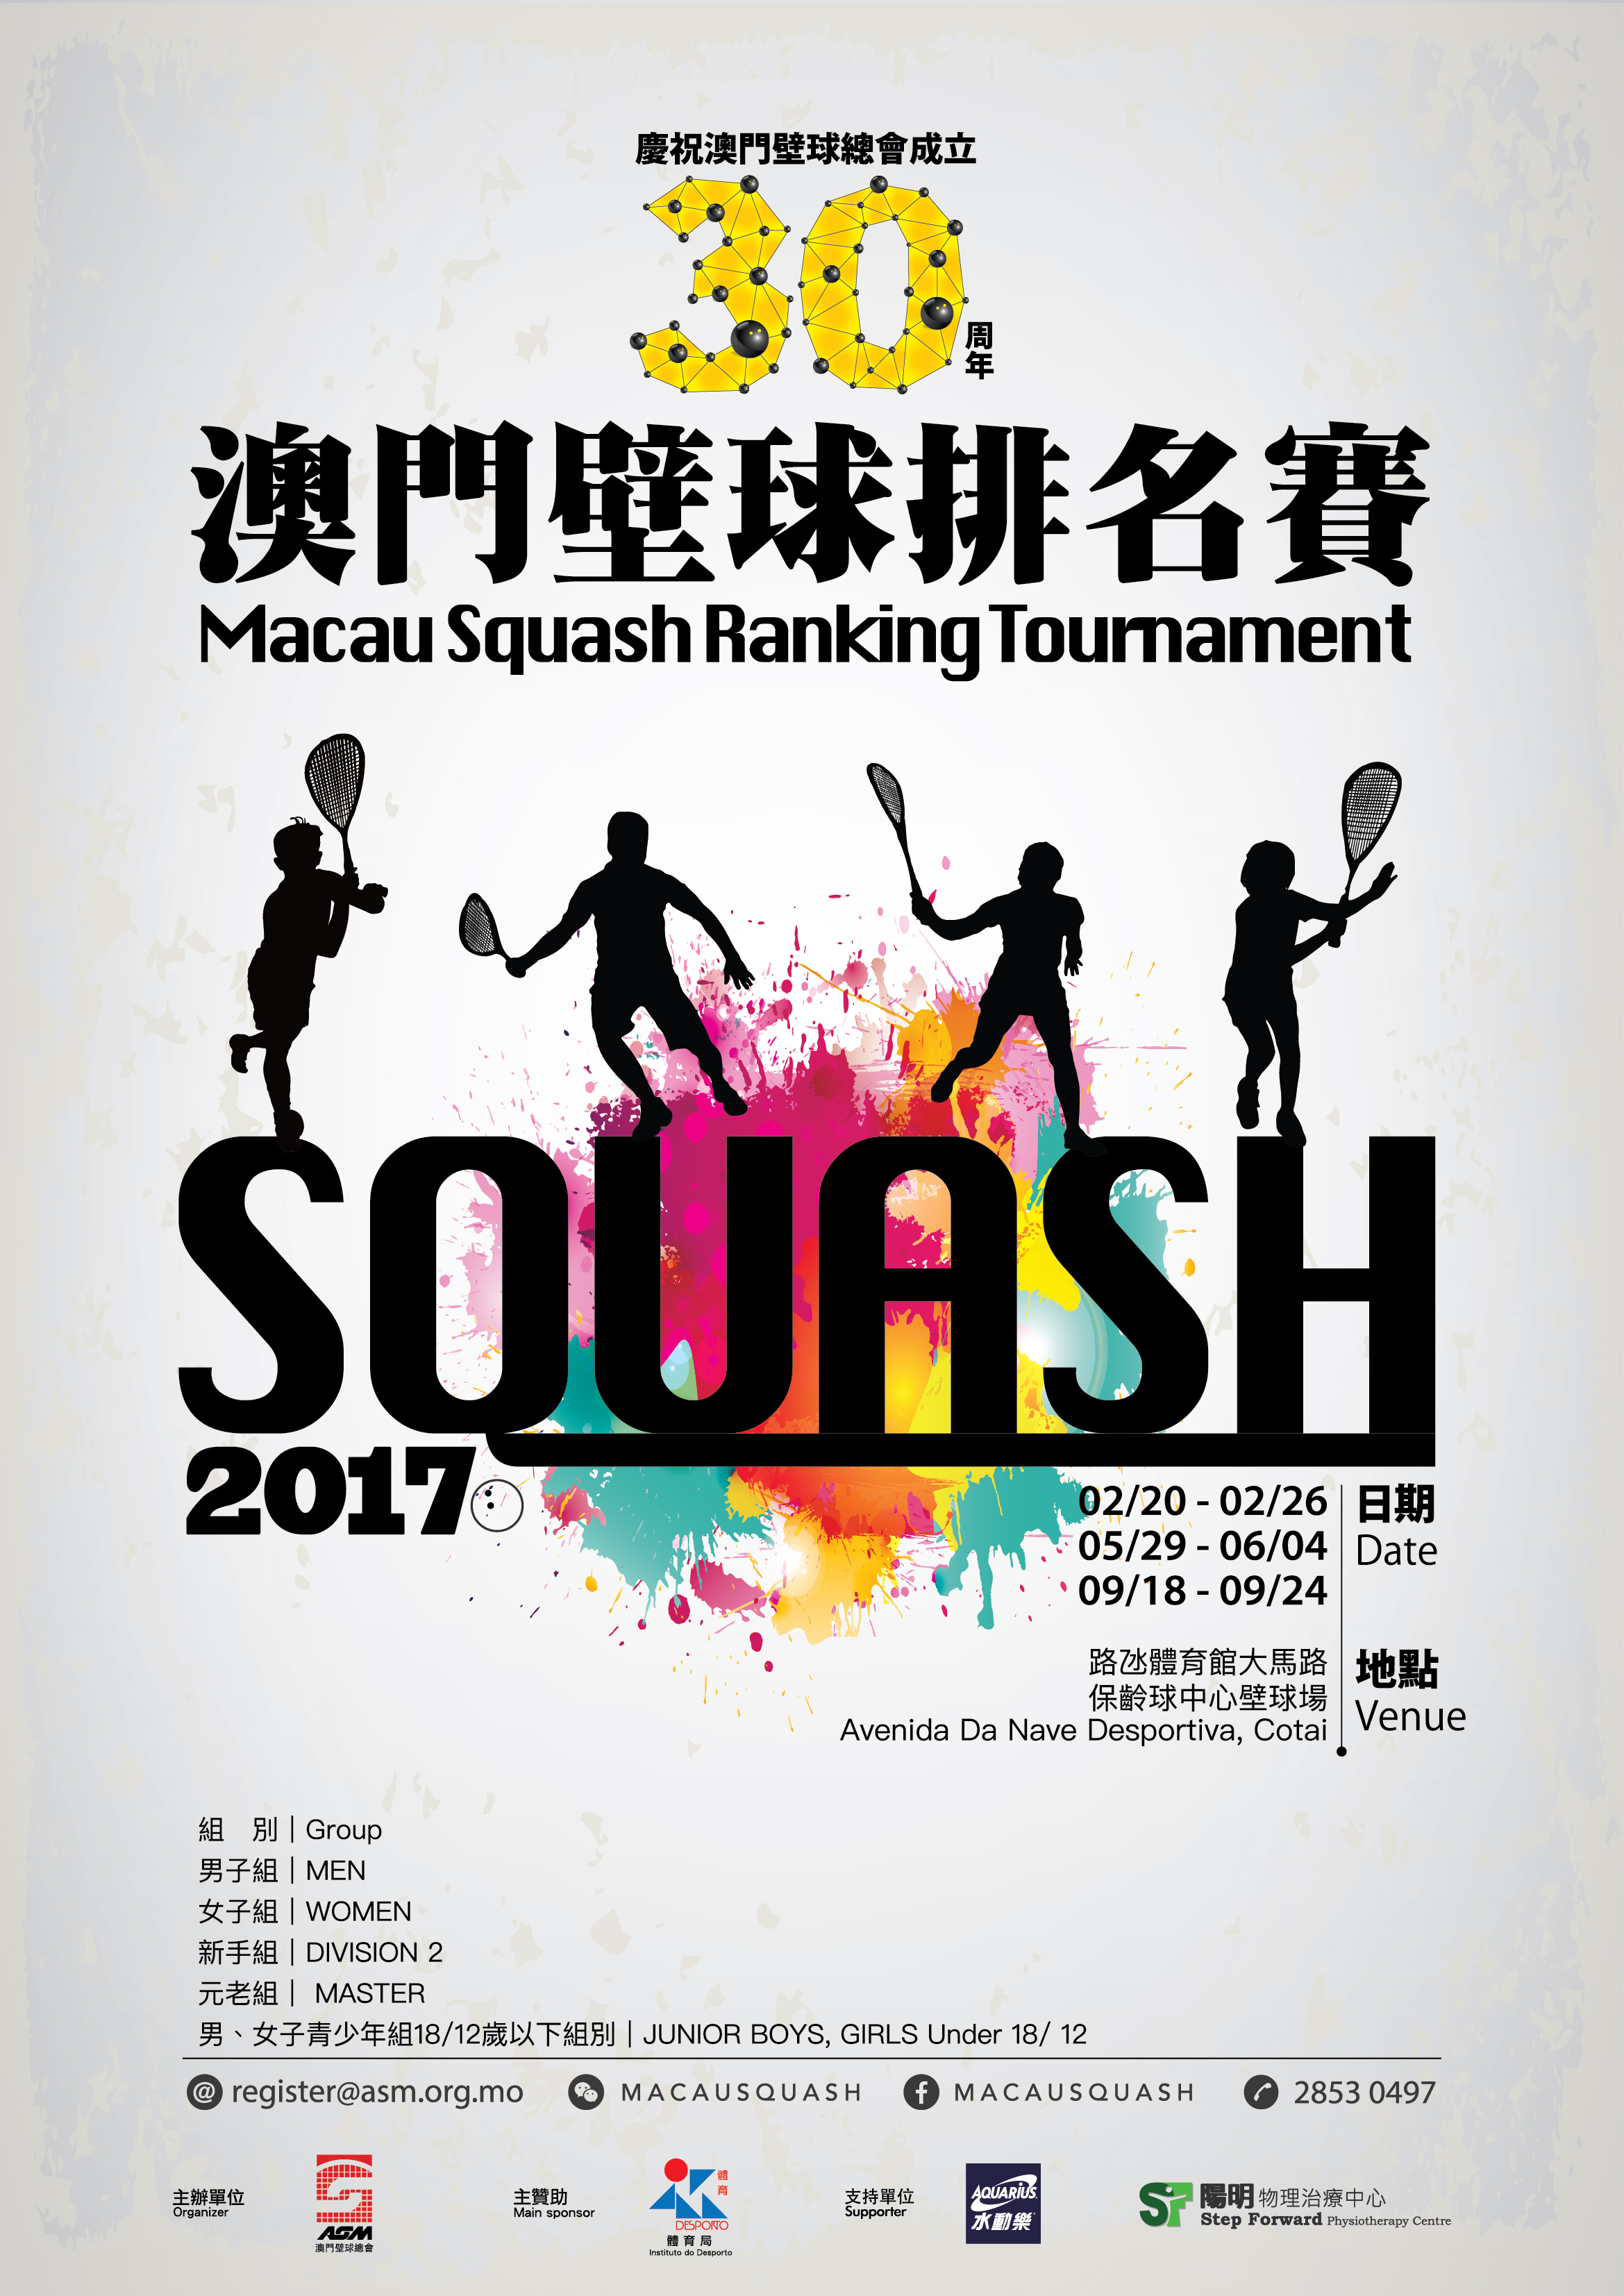 Macau Squash 3rd Ranking Tournament 2017 Are Now Welcome All To Join